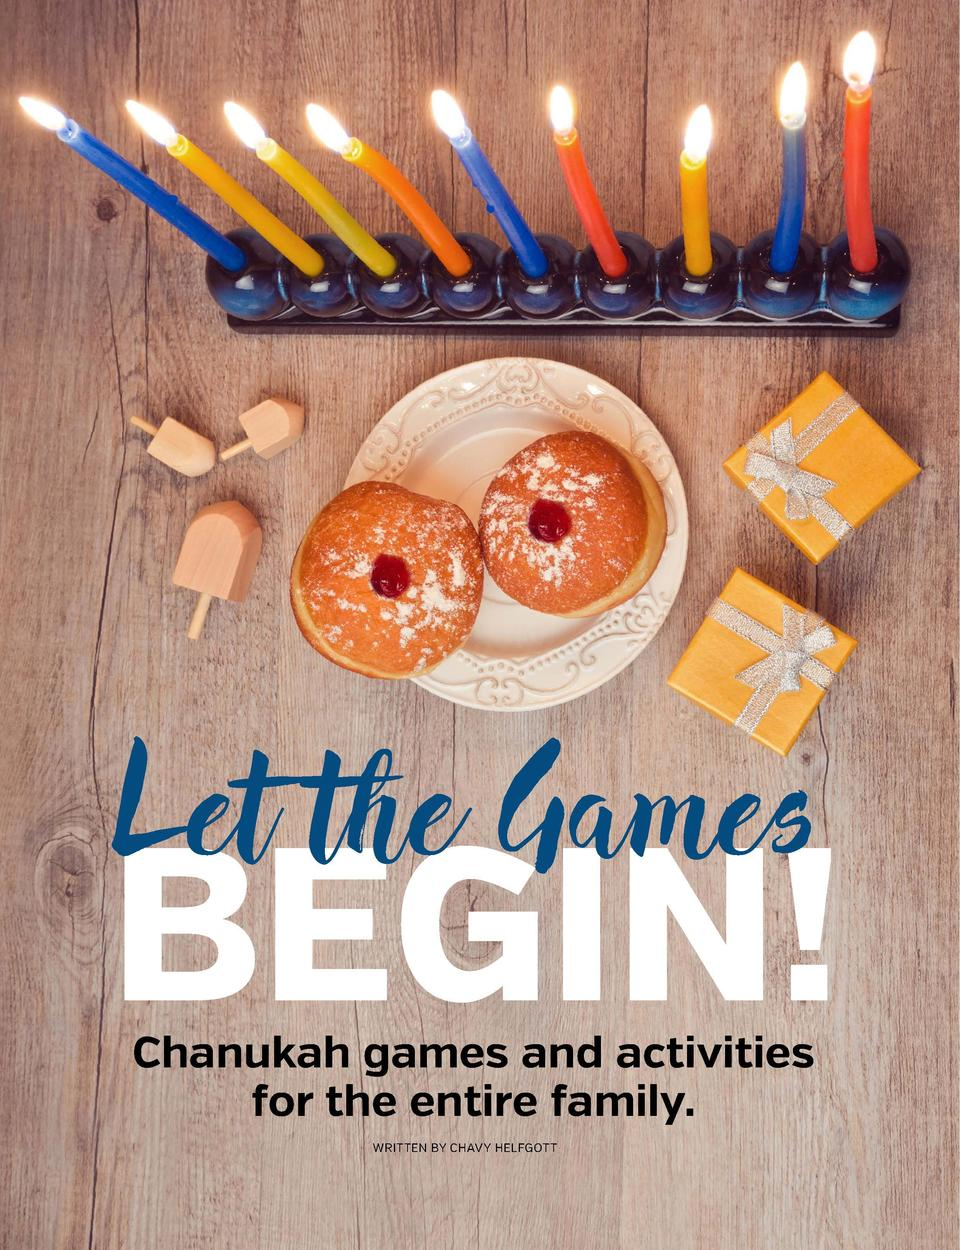 Chanukah evokes images of warm, intimate family gatherings, children laughing and playing, and the crackle of frying latke...